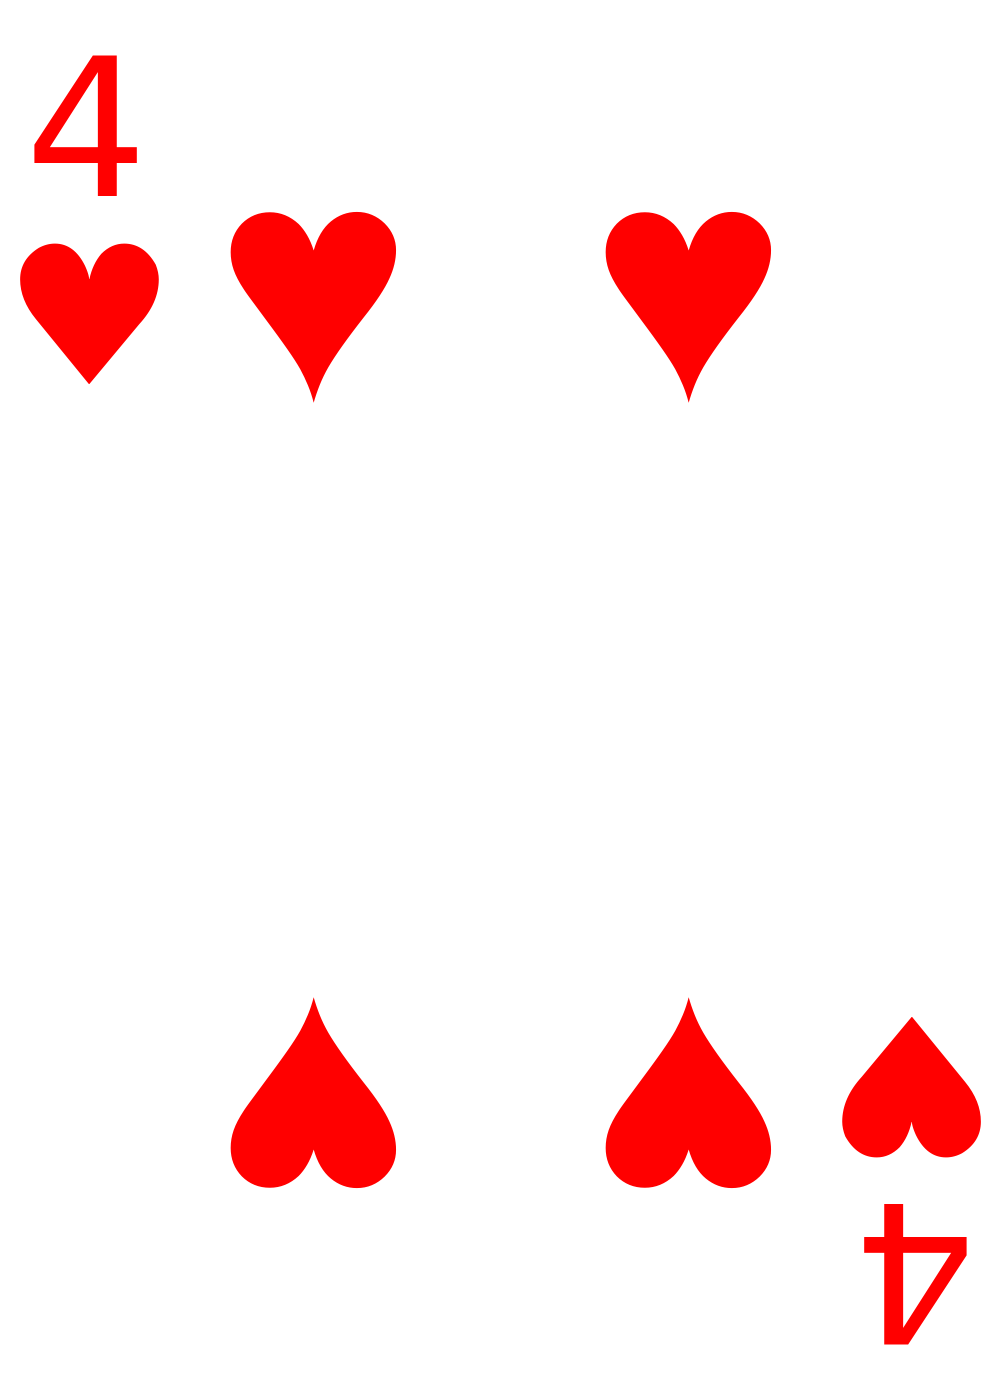 Heart card clipart svg freeuse File:Cards-4-Heart.svg - Wikimedia Commons svg freeuse